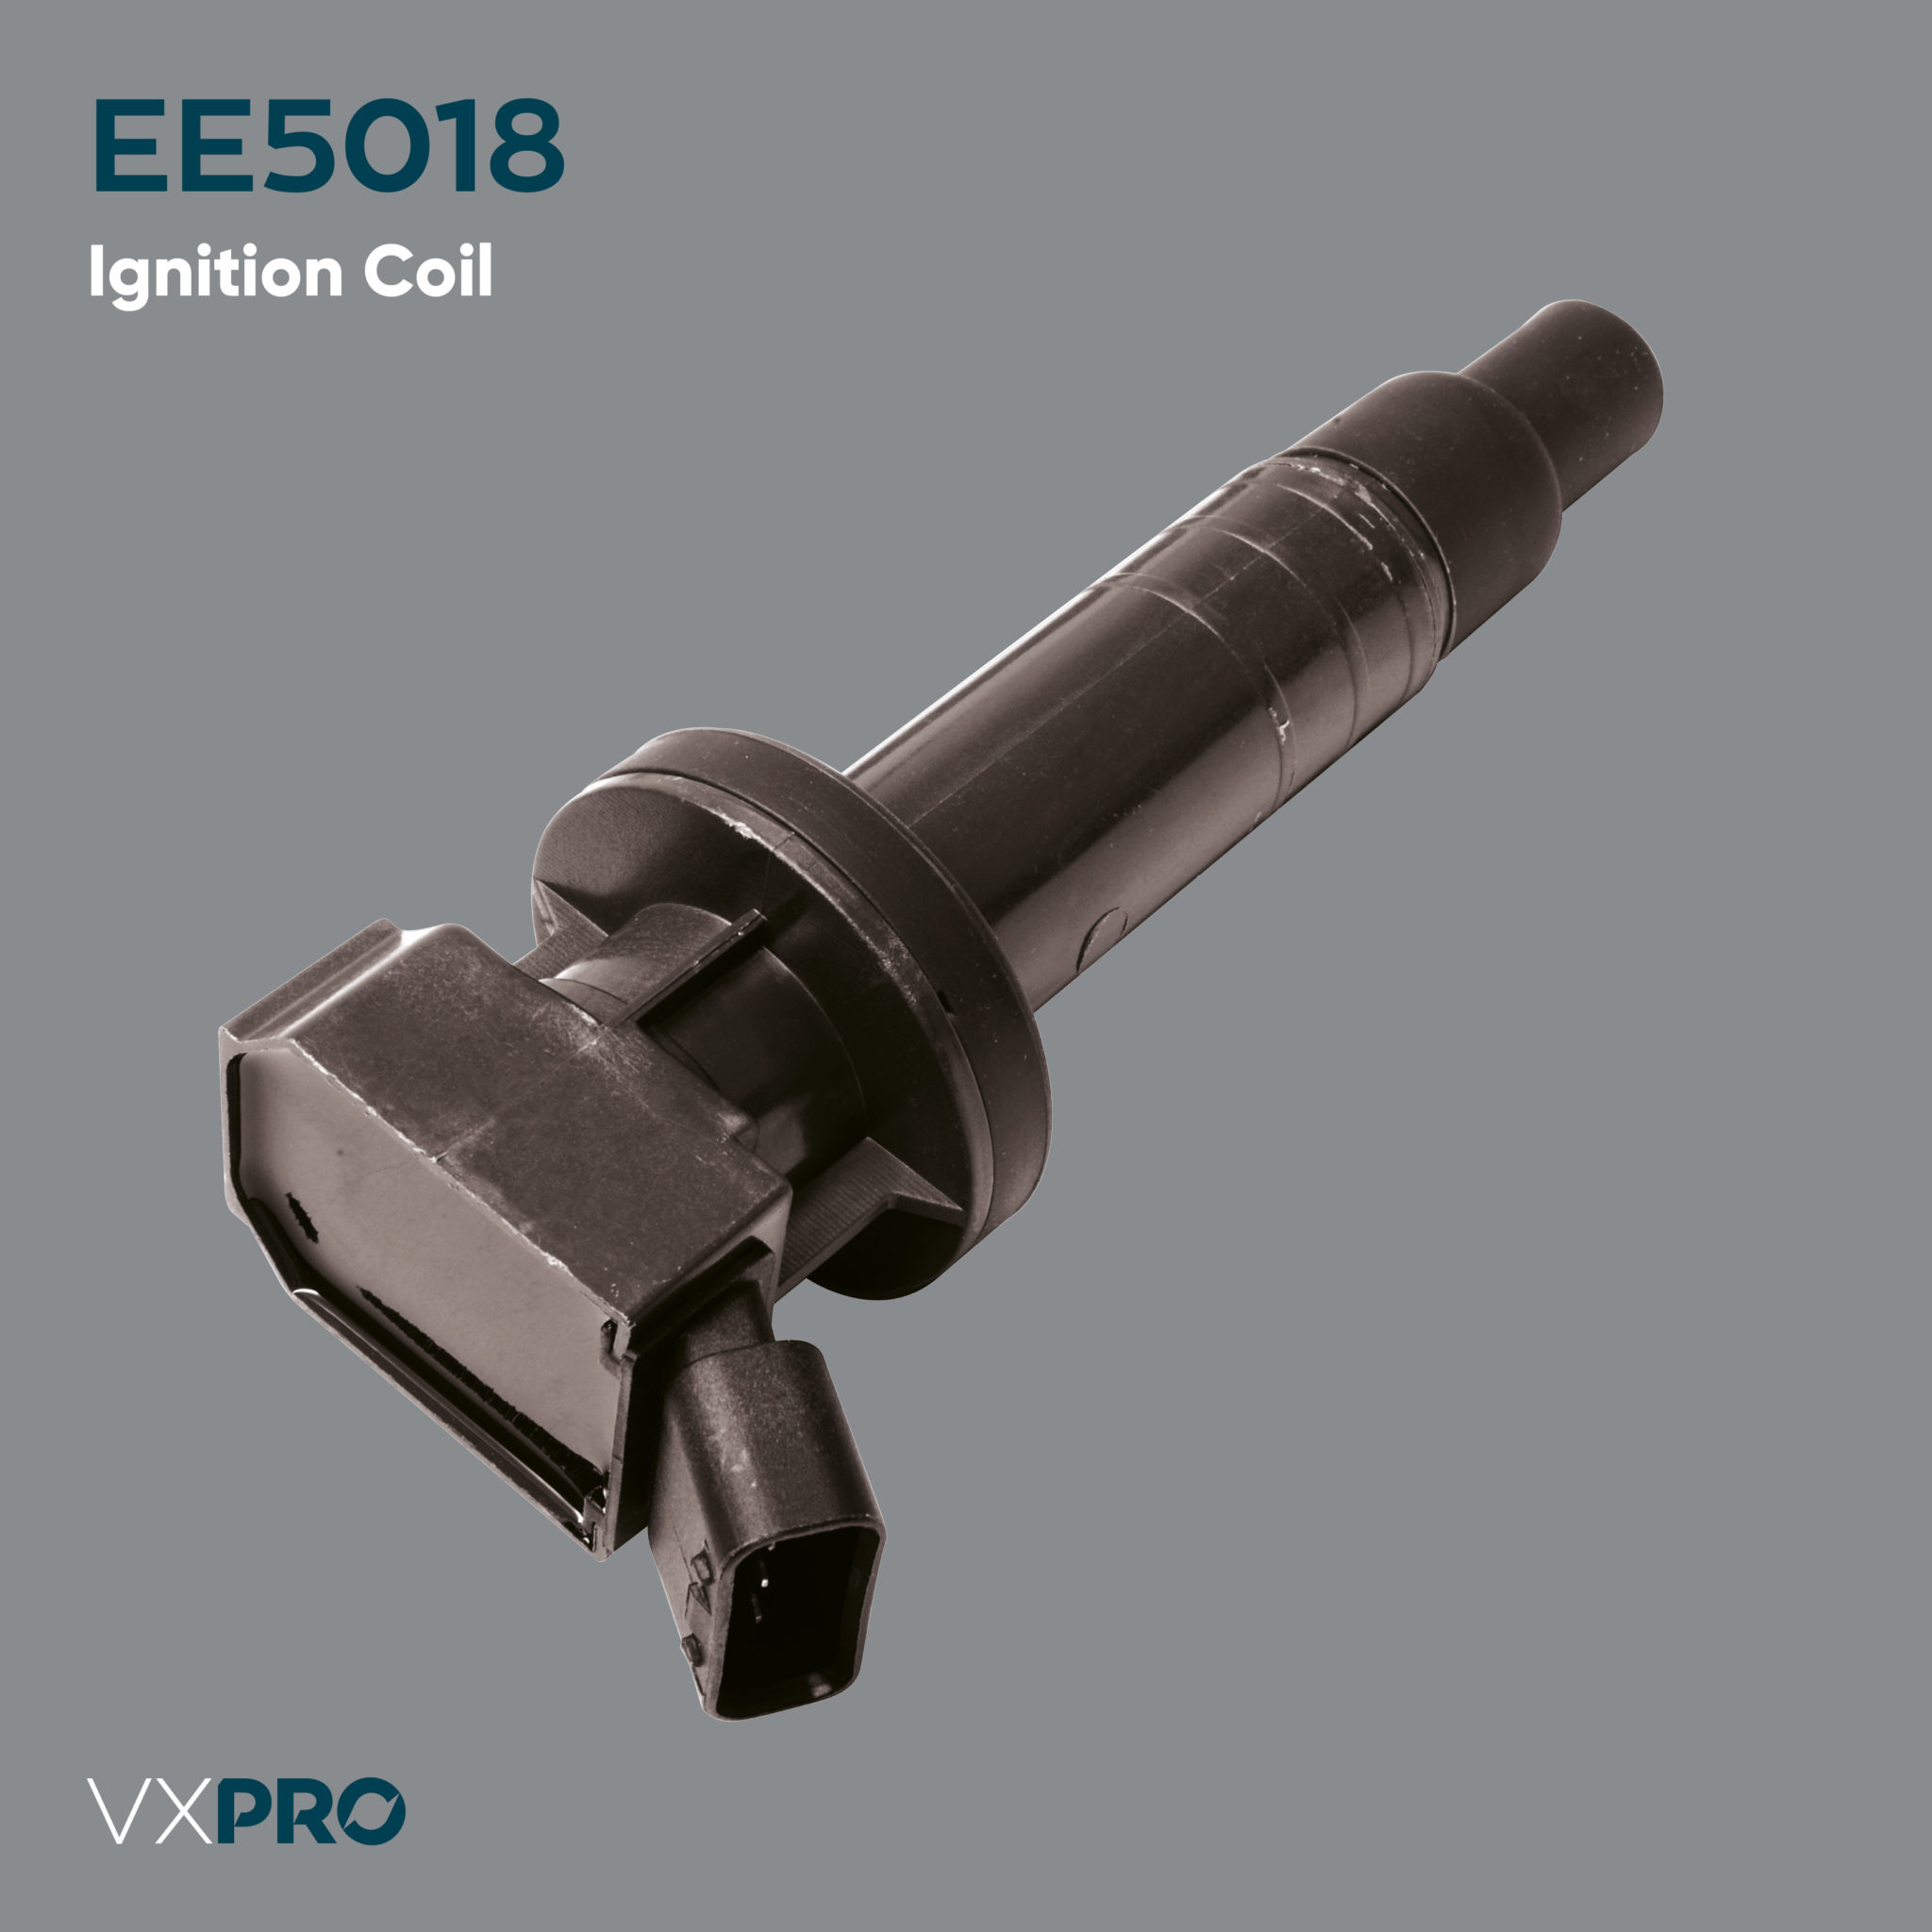 EE5018 Ignition Coil